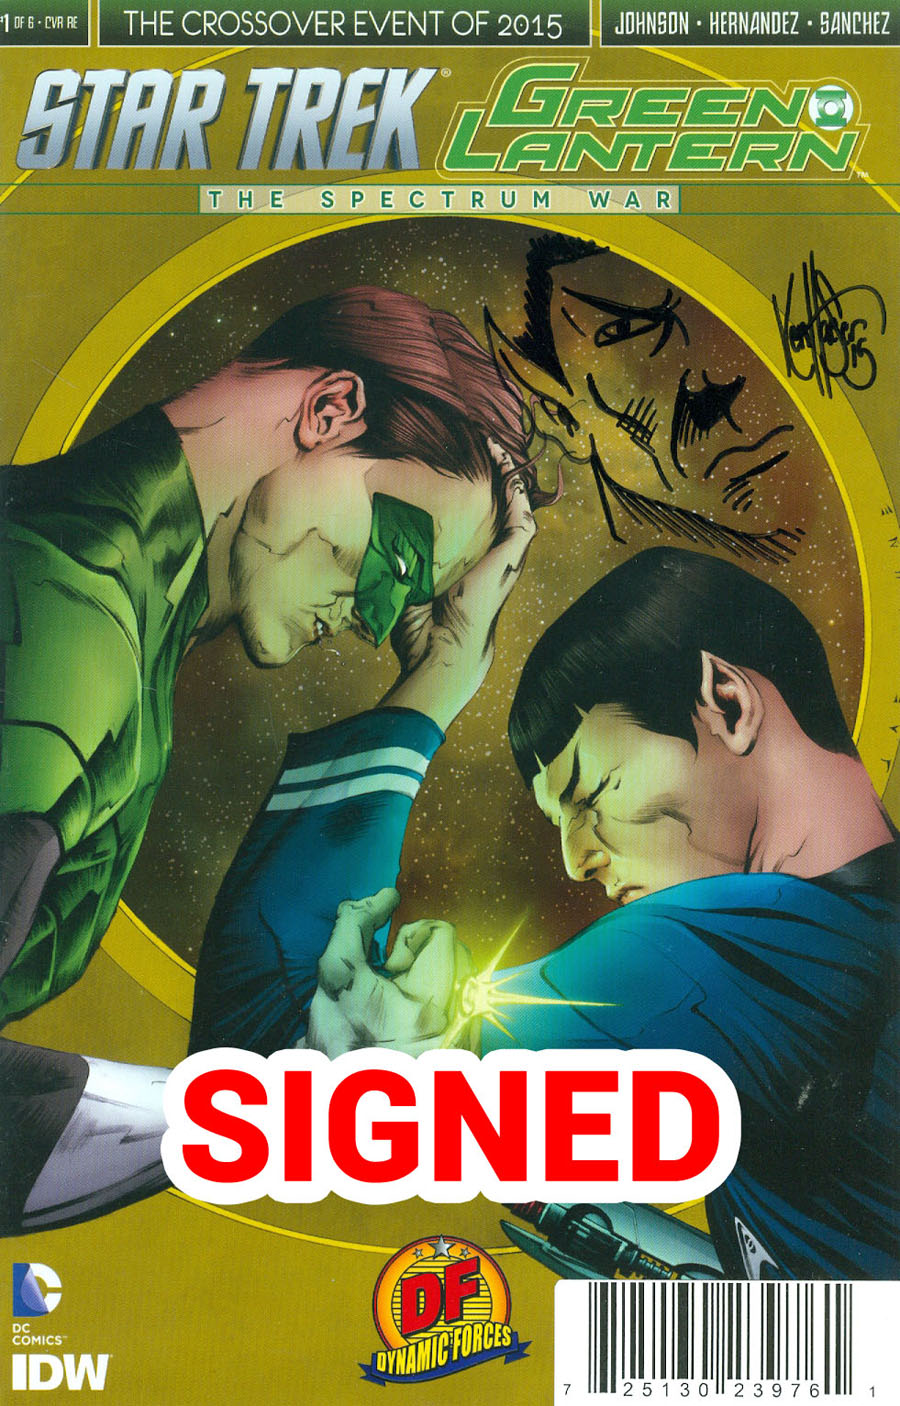 Star Trek Green Lantern #1 Cover N DF Exclusive Ken Haeser Signed & Remarked With A Spock Hand-Drawn Sketch Variant Cover